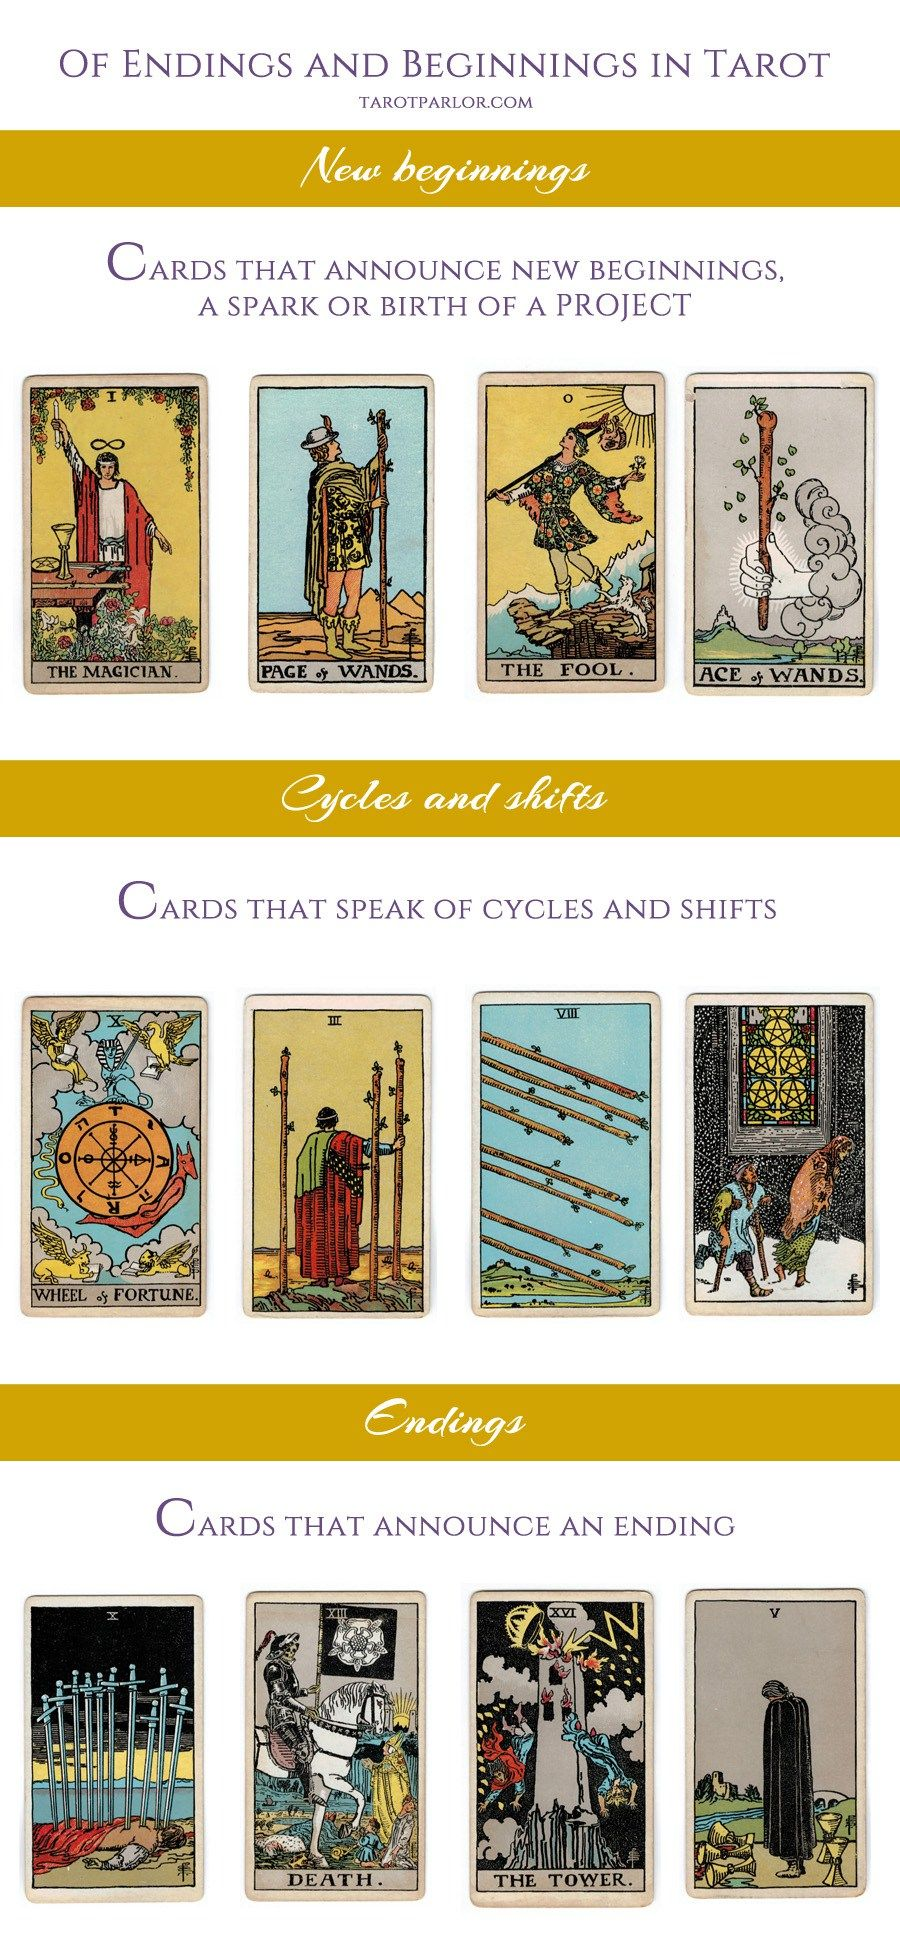 Endings And Beginnings In Tarot